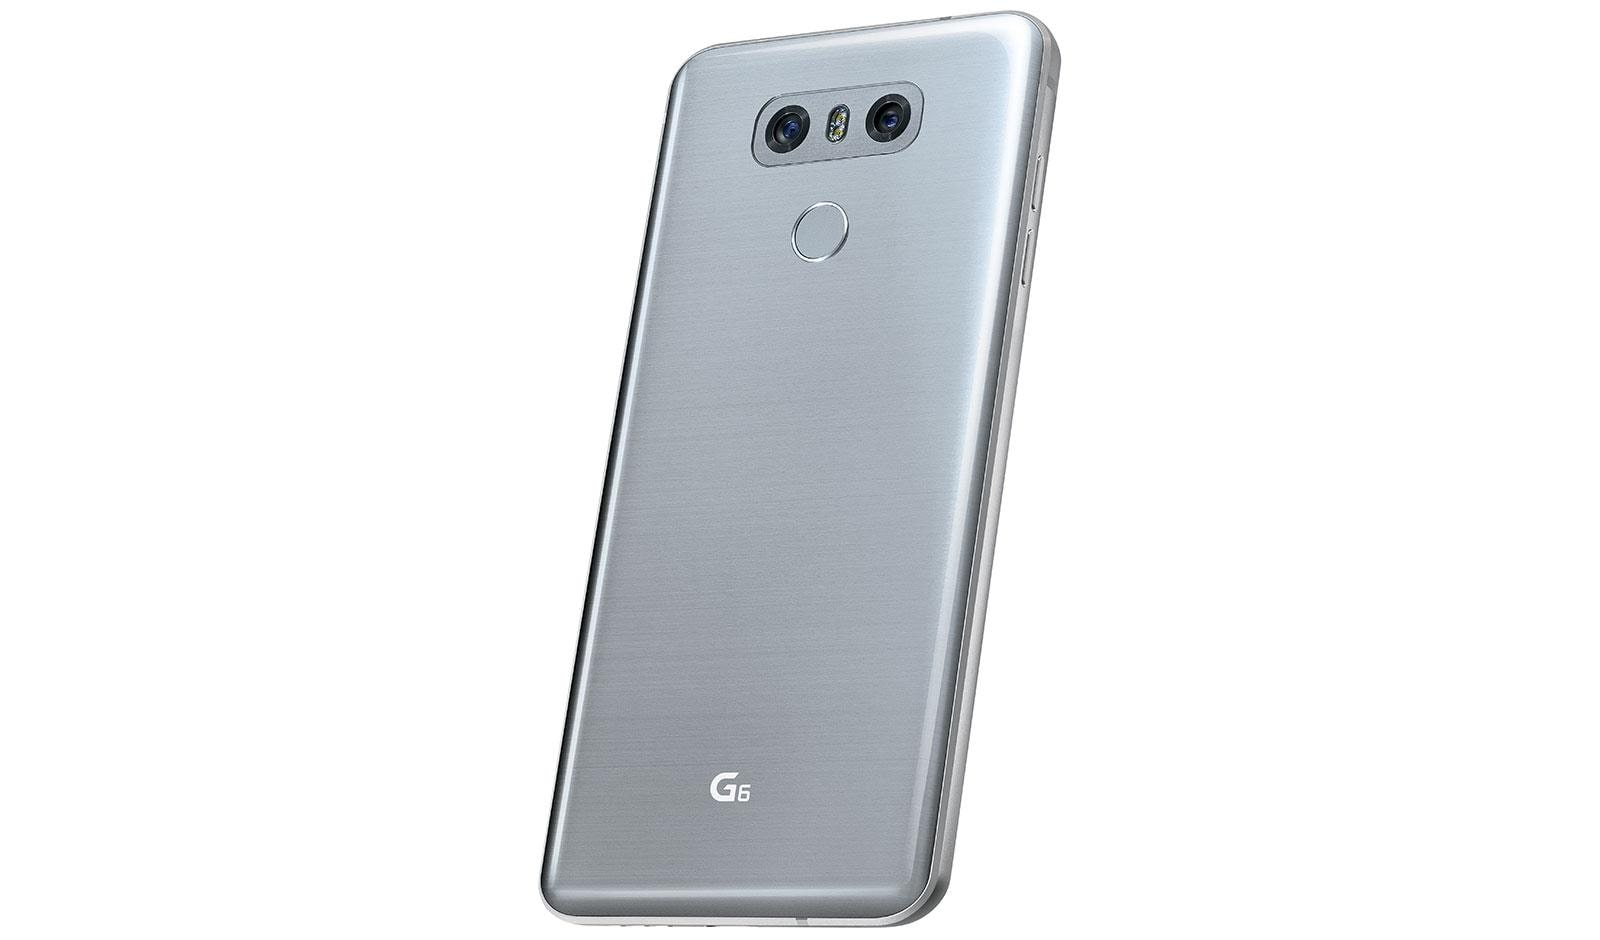 LGUS997 Unlock(Not compatible Sprint)- LG - Employee Online Shop